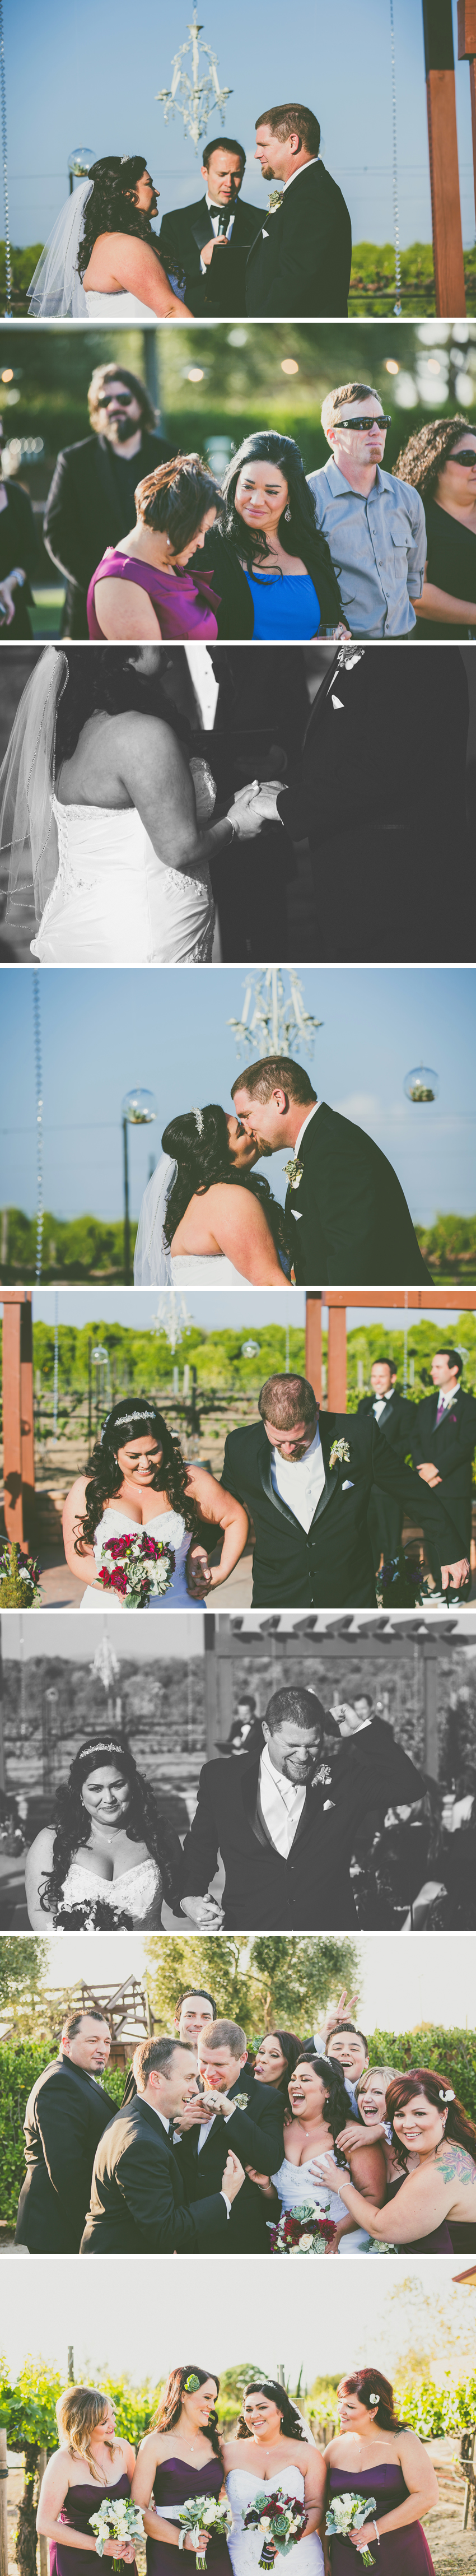 Wiens-wedding-photos7